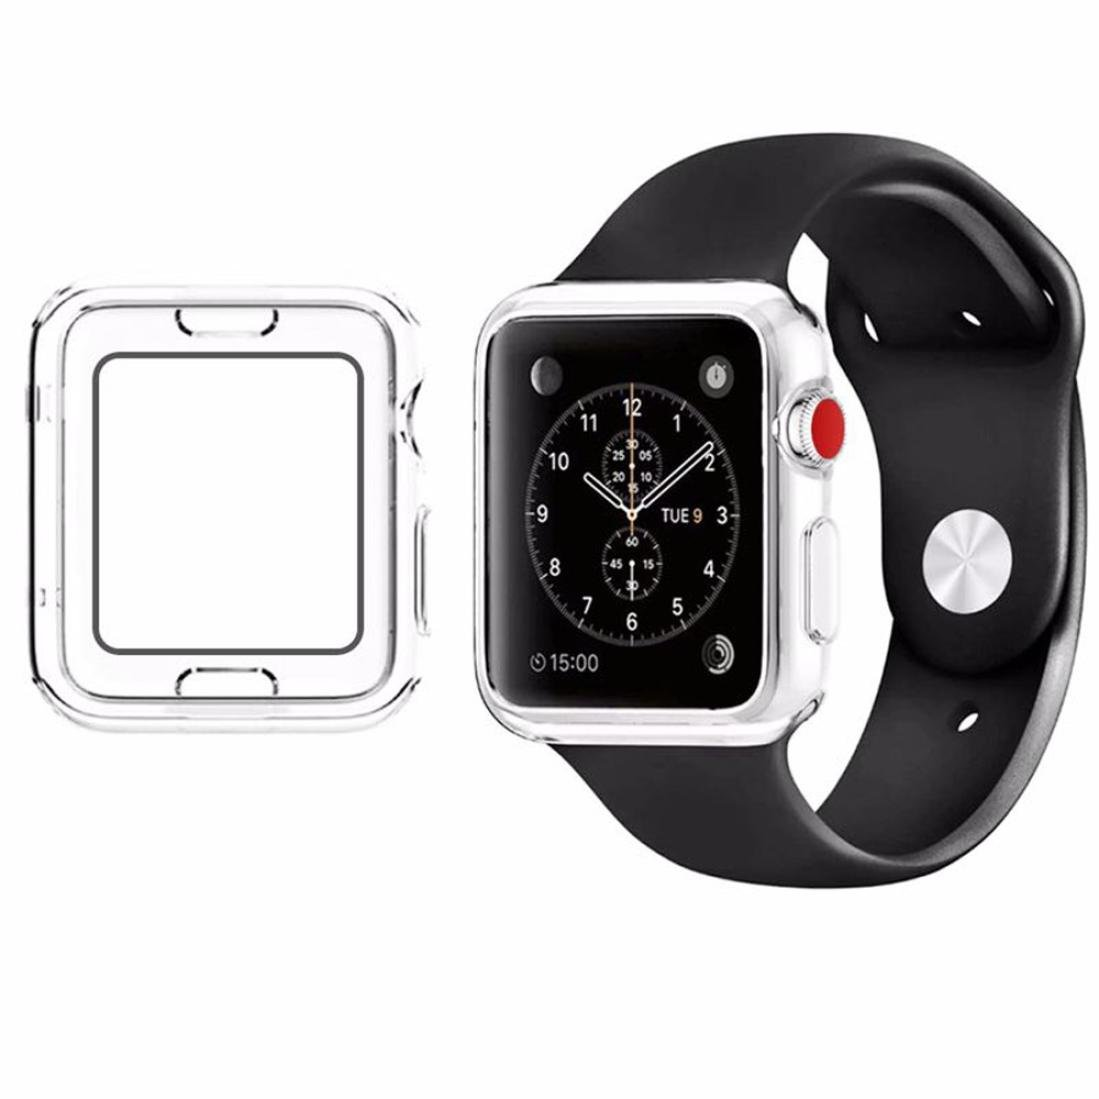 For Apple Watch Series 3 38mm, Gotd Ultra-Slim Clear TPU Protect Case Cover For Apple Watch Series 3 38mm (Transparent)